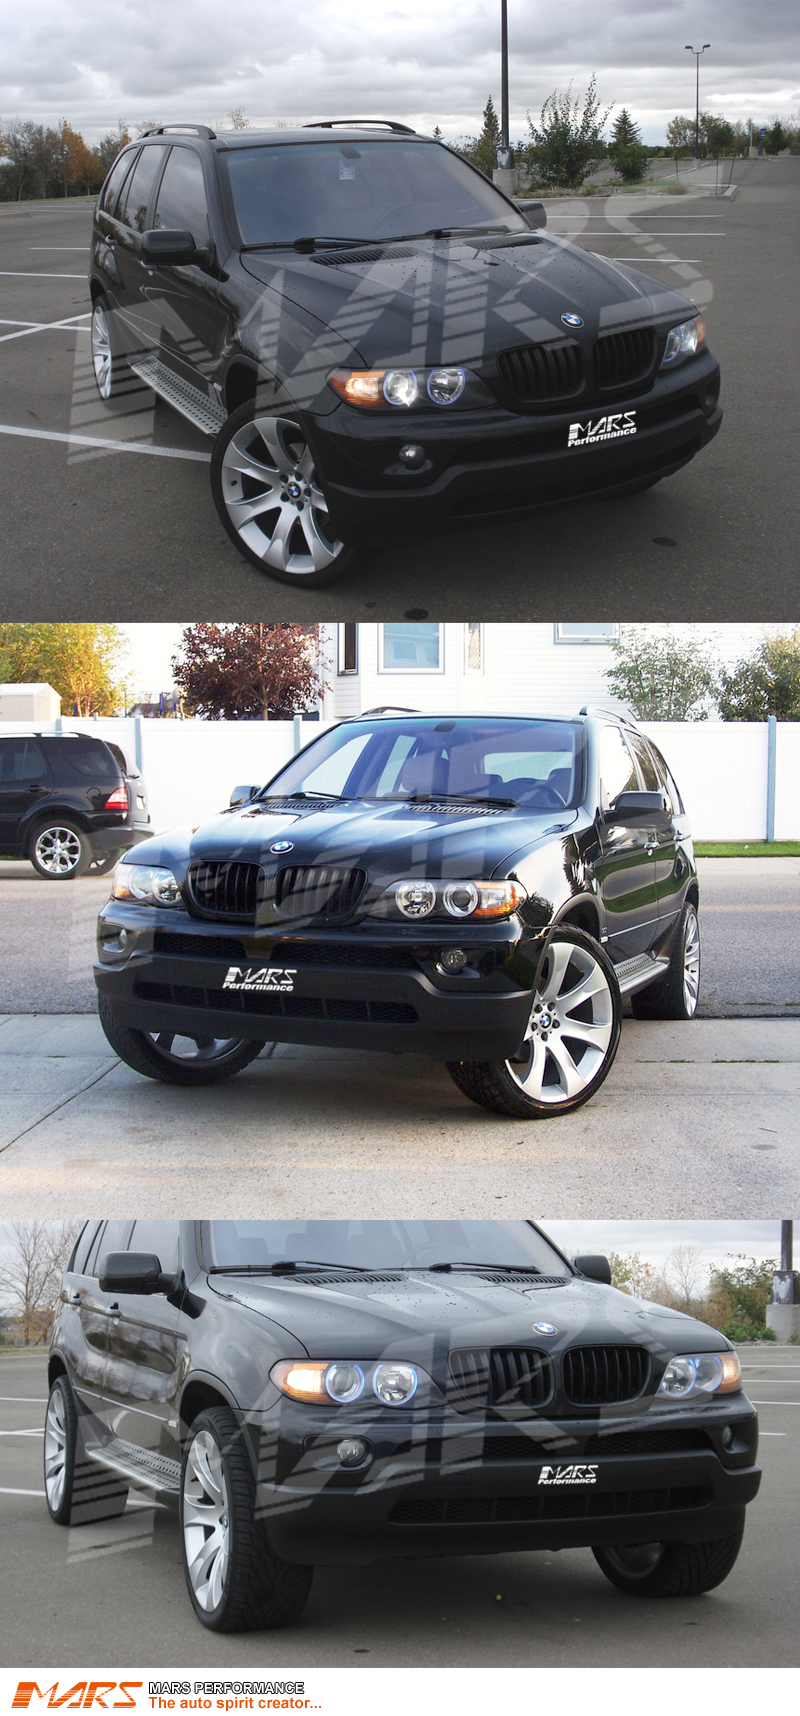 Chrome Silver X5M Style Front Hood Kidney Grille for BMW X5 E53 04-06 LCI Grill